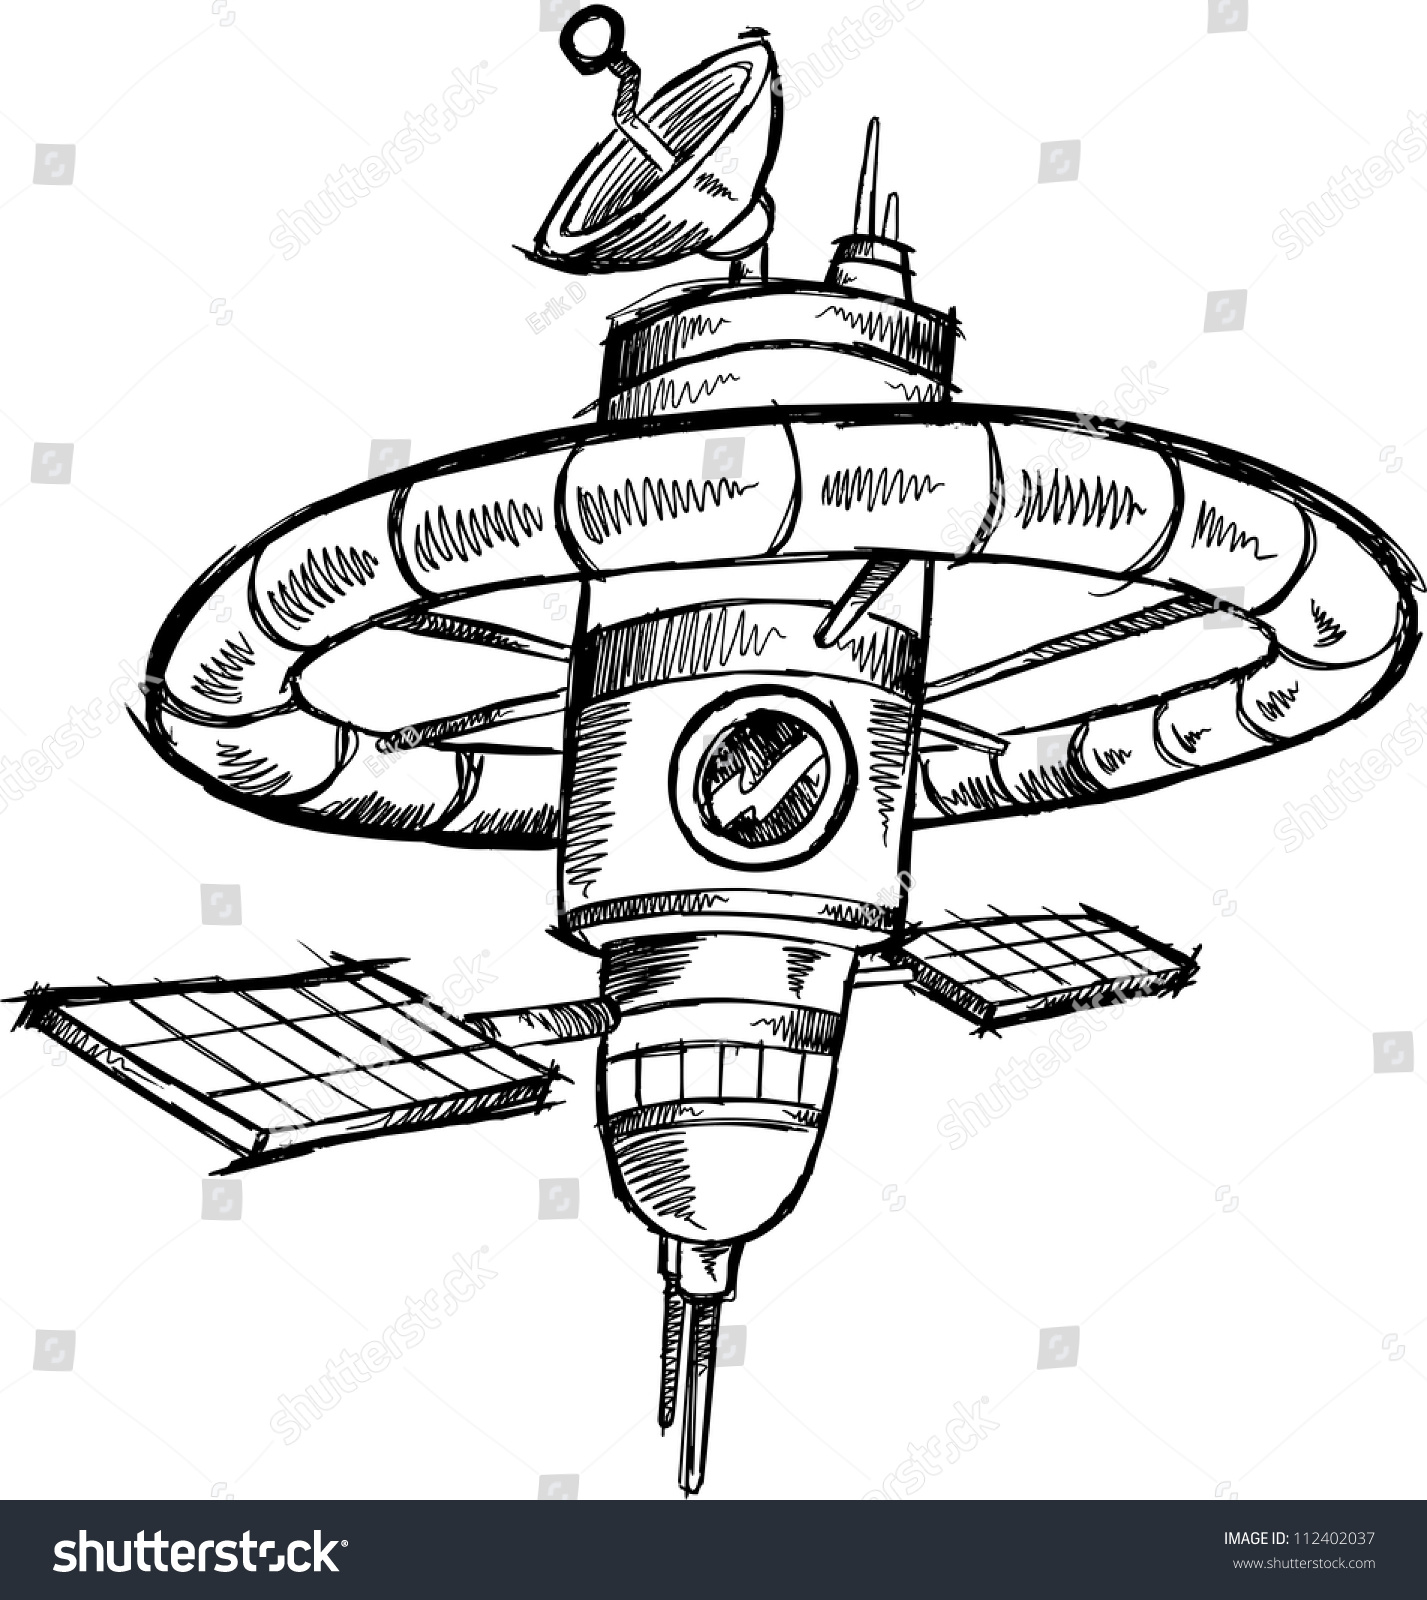 space station clipart - photo #46